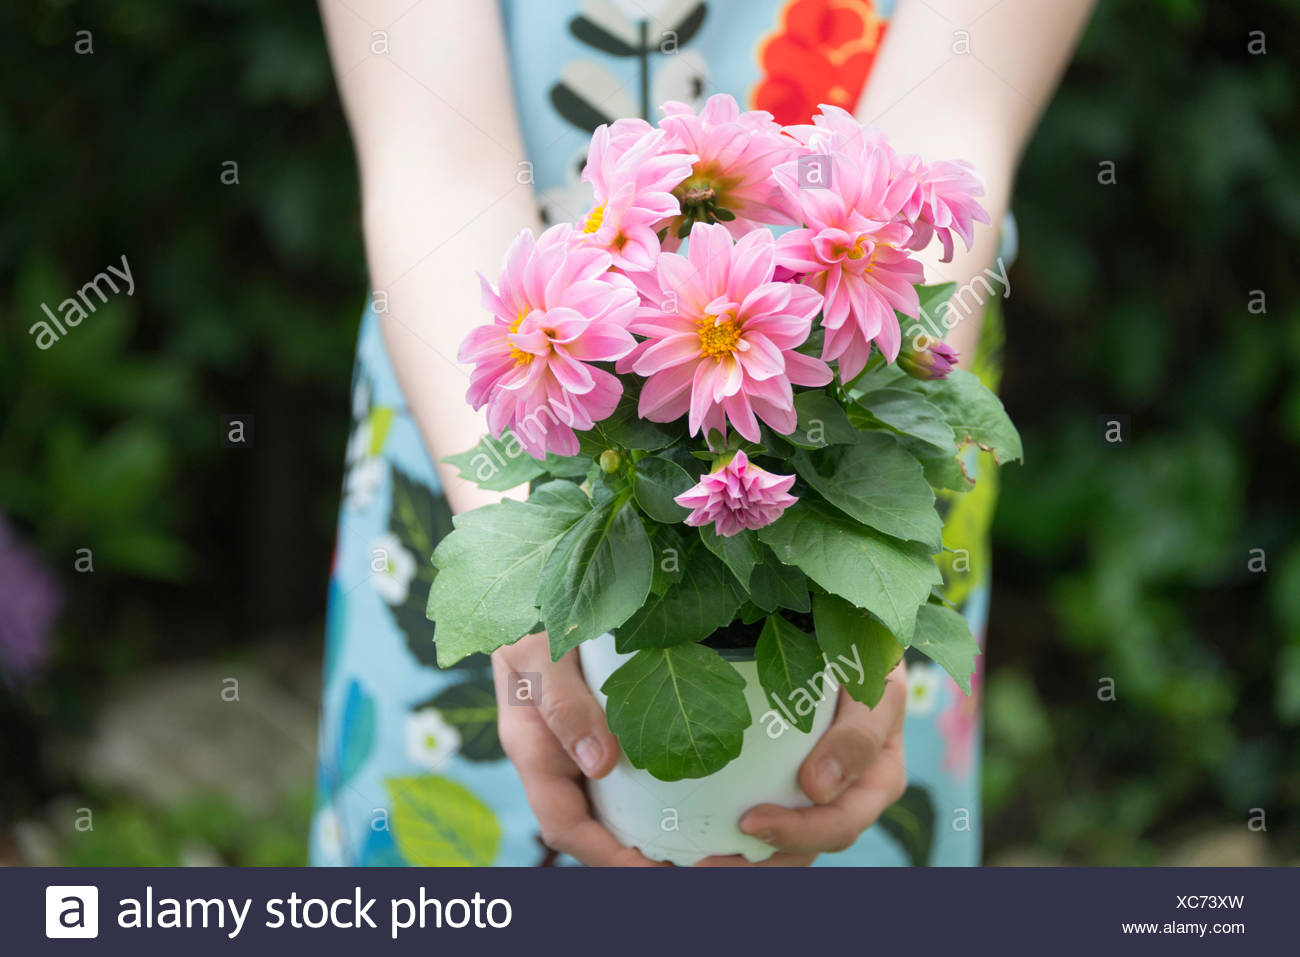 Girl gardening, holding pot with flowers - Stock Image